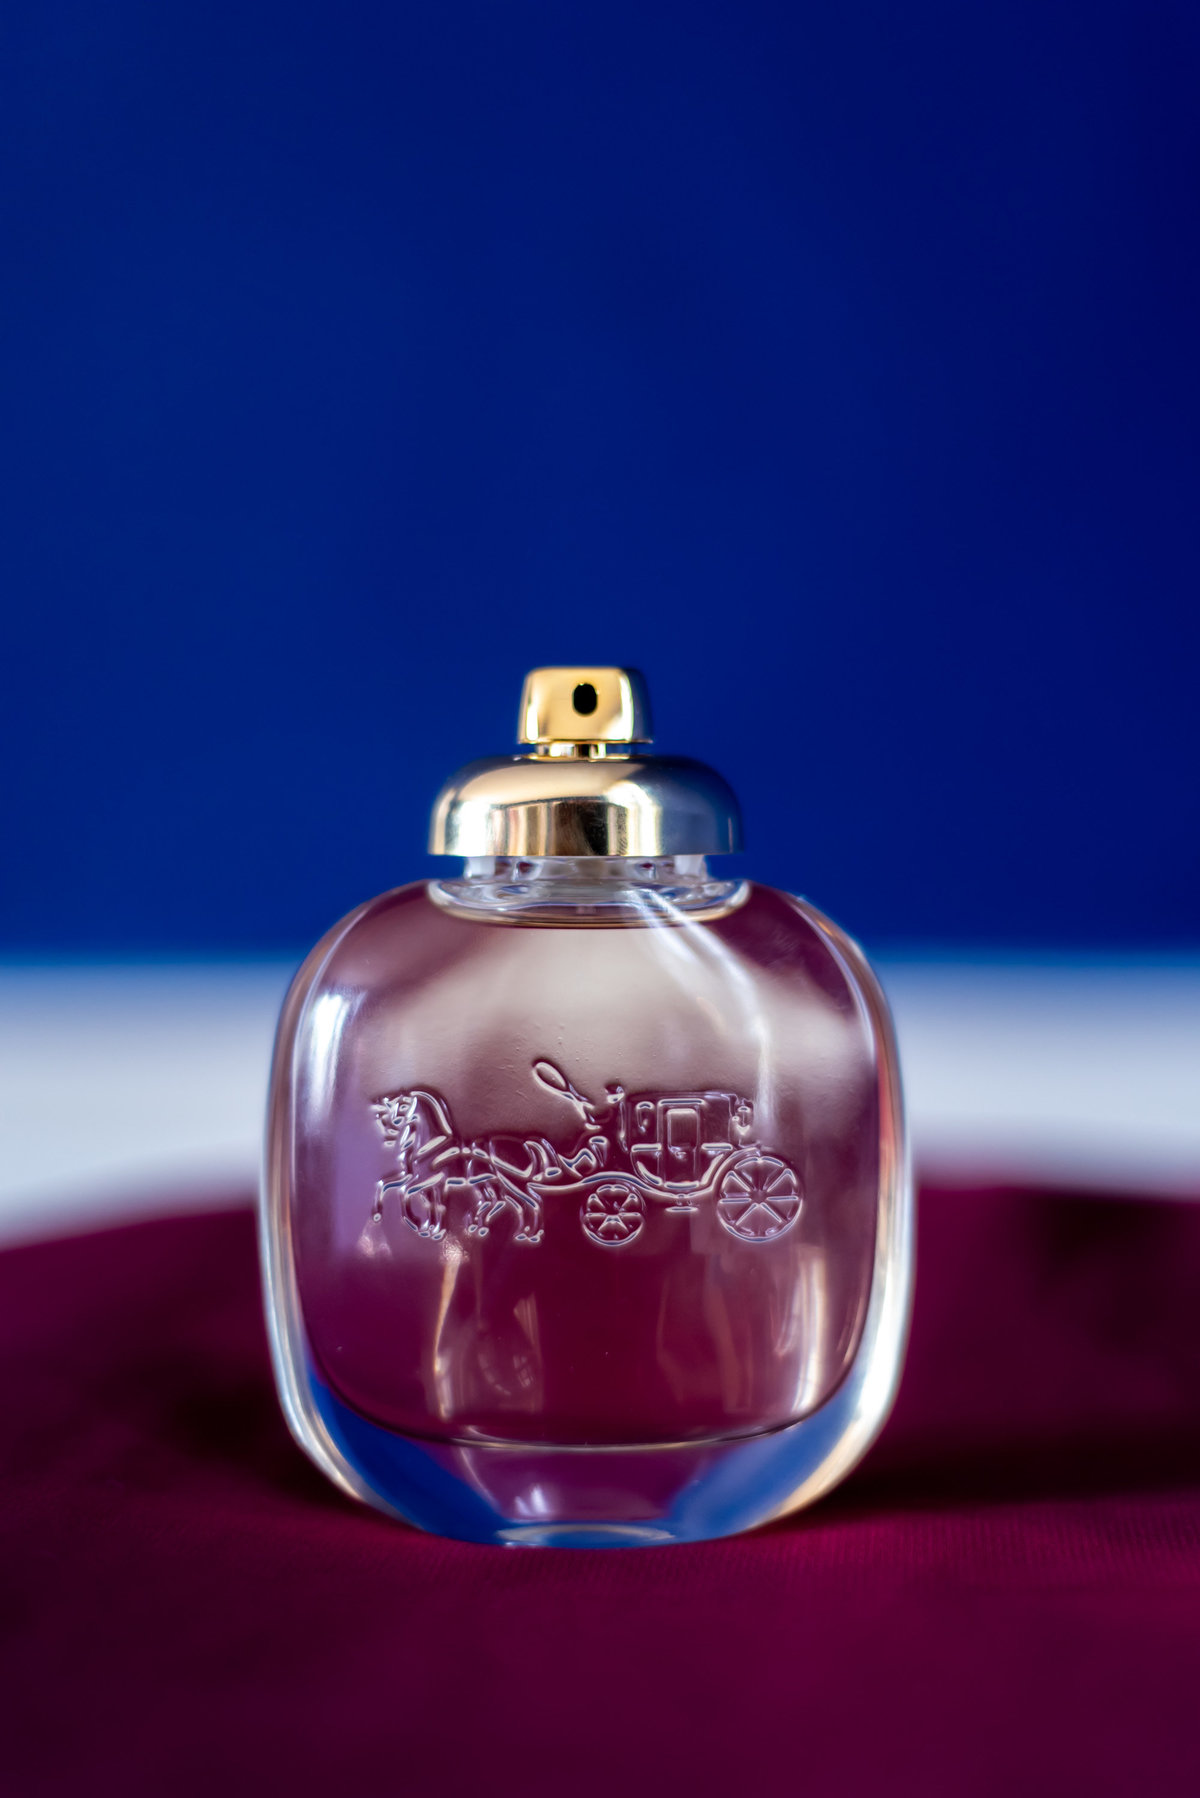 Beautiful photo of a parfume. Richmond wedding photographers